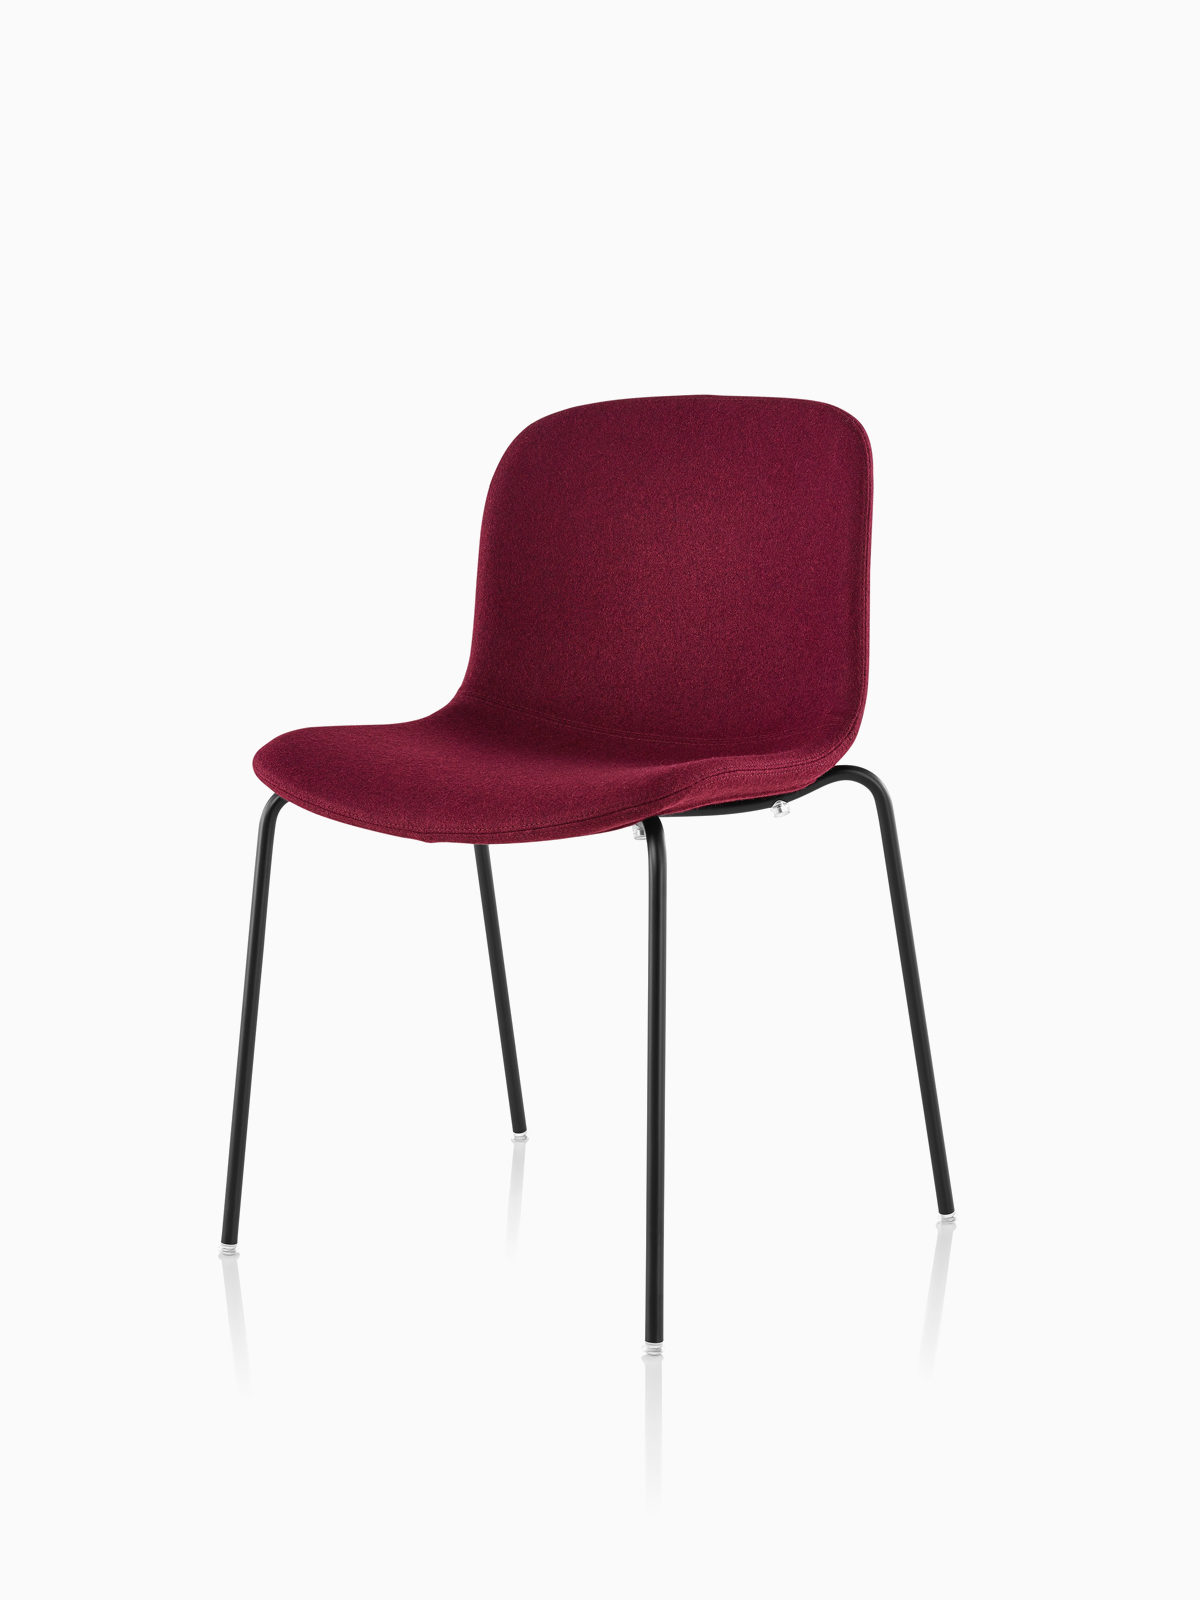 Magis Troy Upholstered Chair